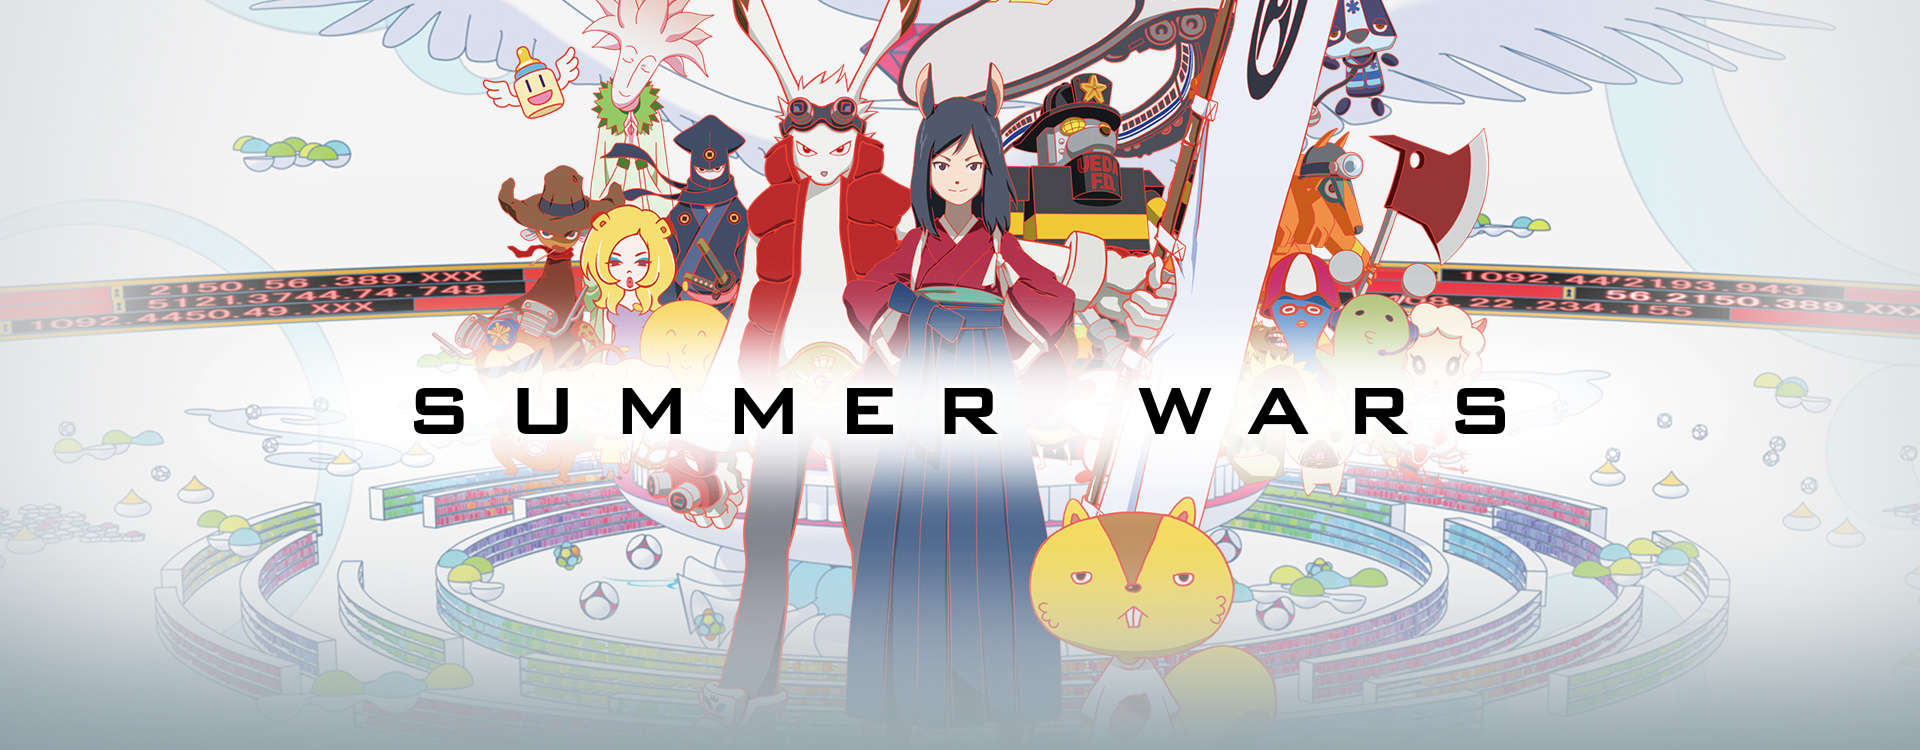 Summer Wars header